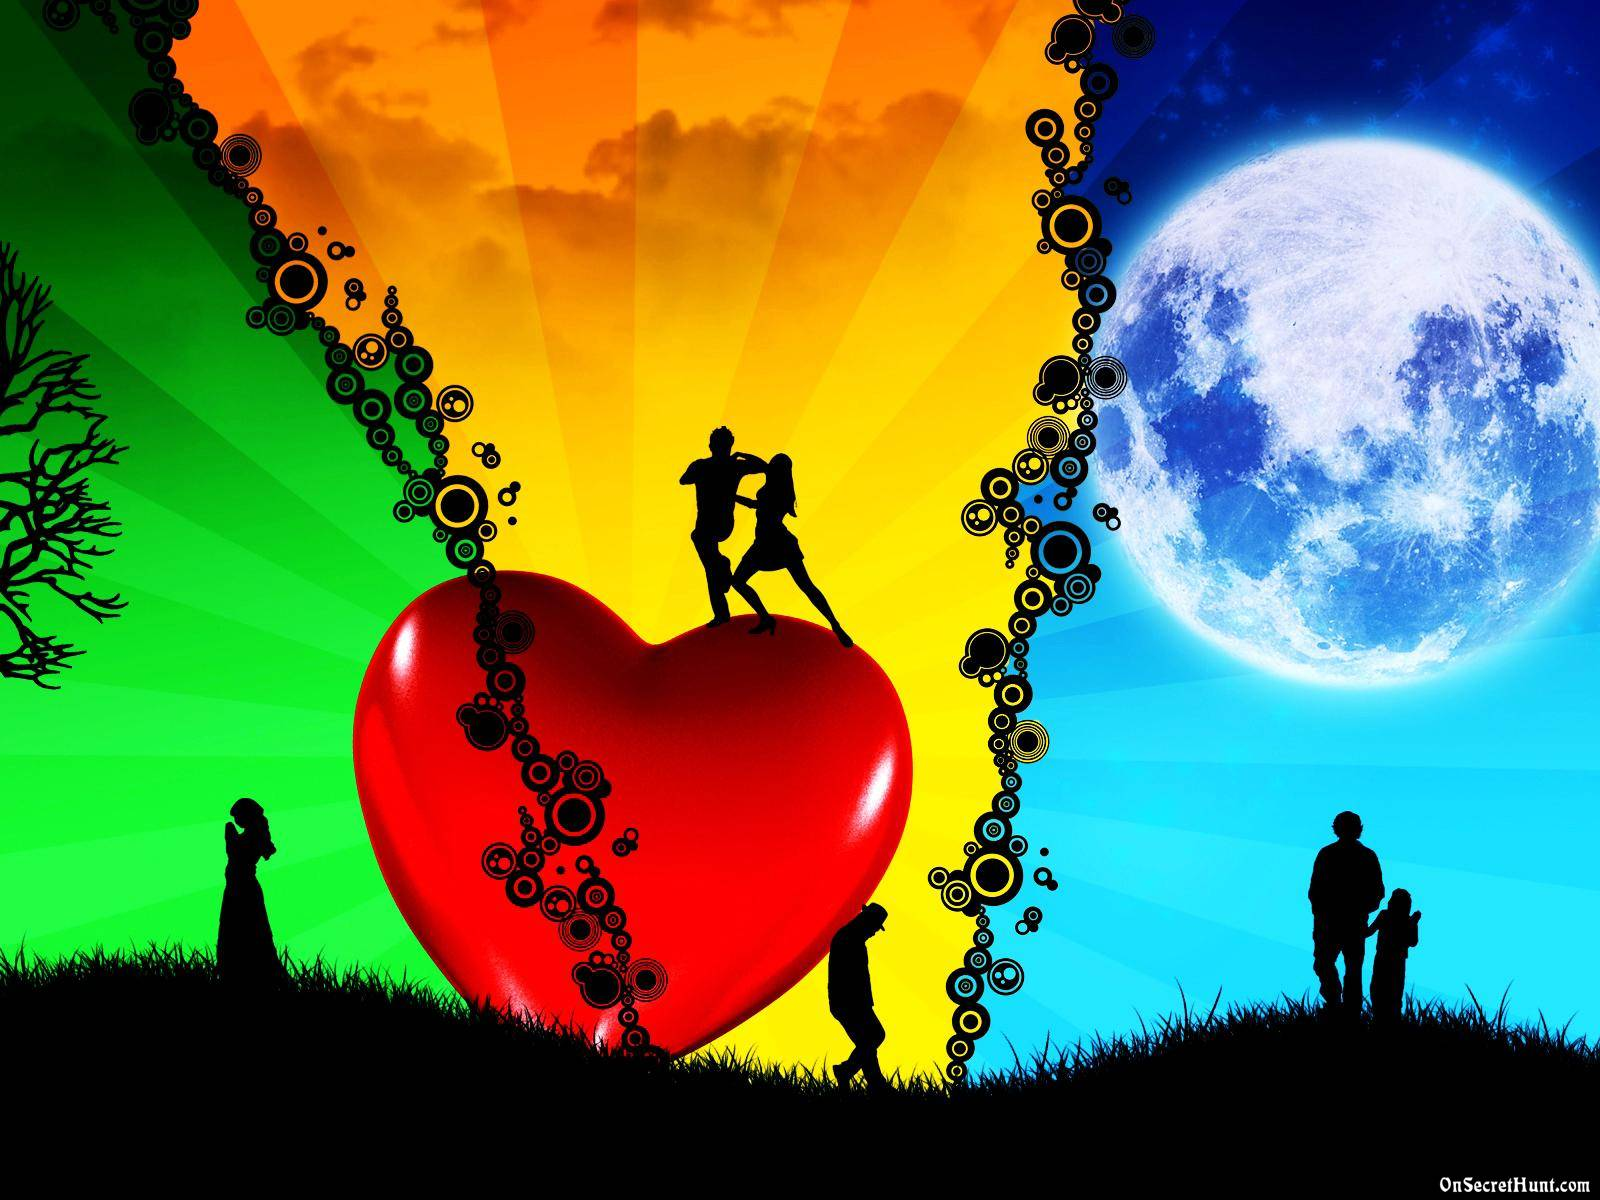 Love Wallpaper Full Hd Size : Love Wallpapers 3D - Wallpaper cave